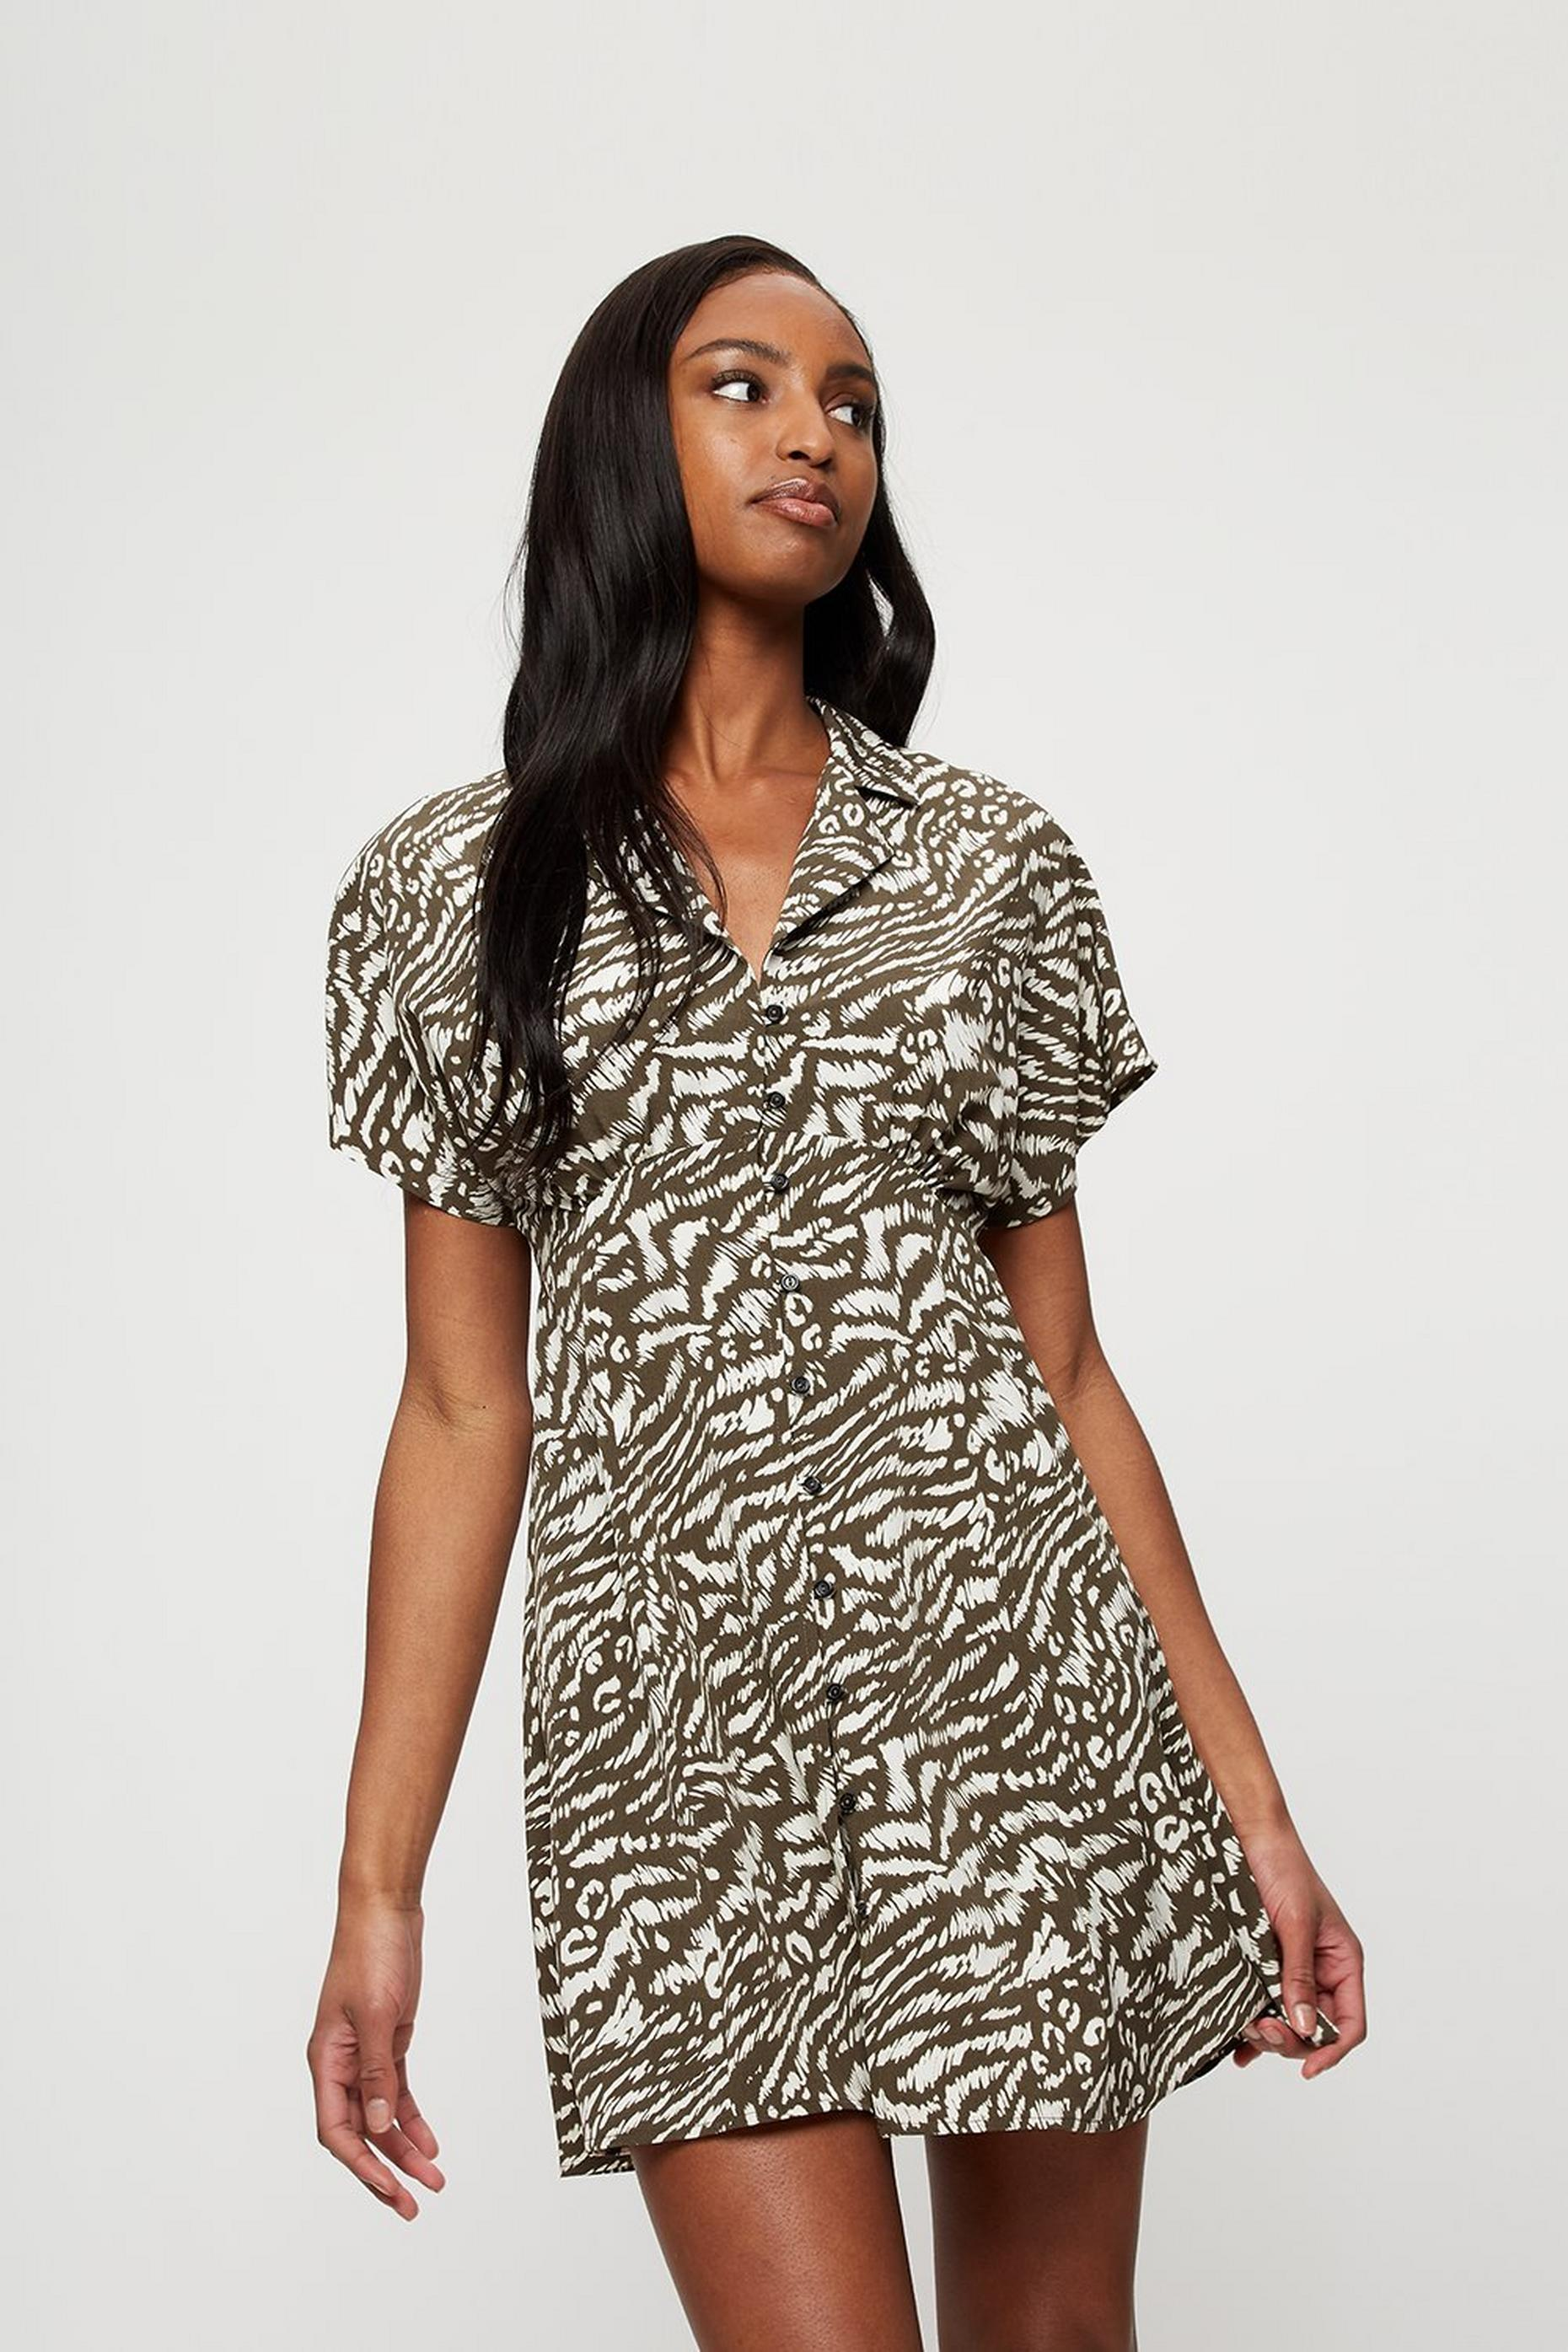 Khaki Animal Resort Shirt Dress